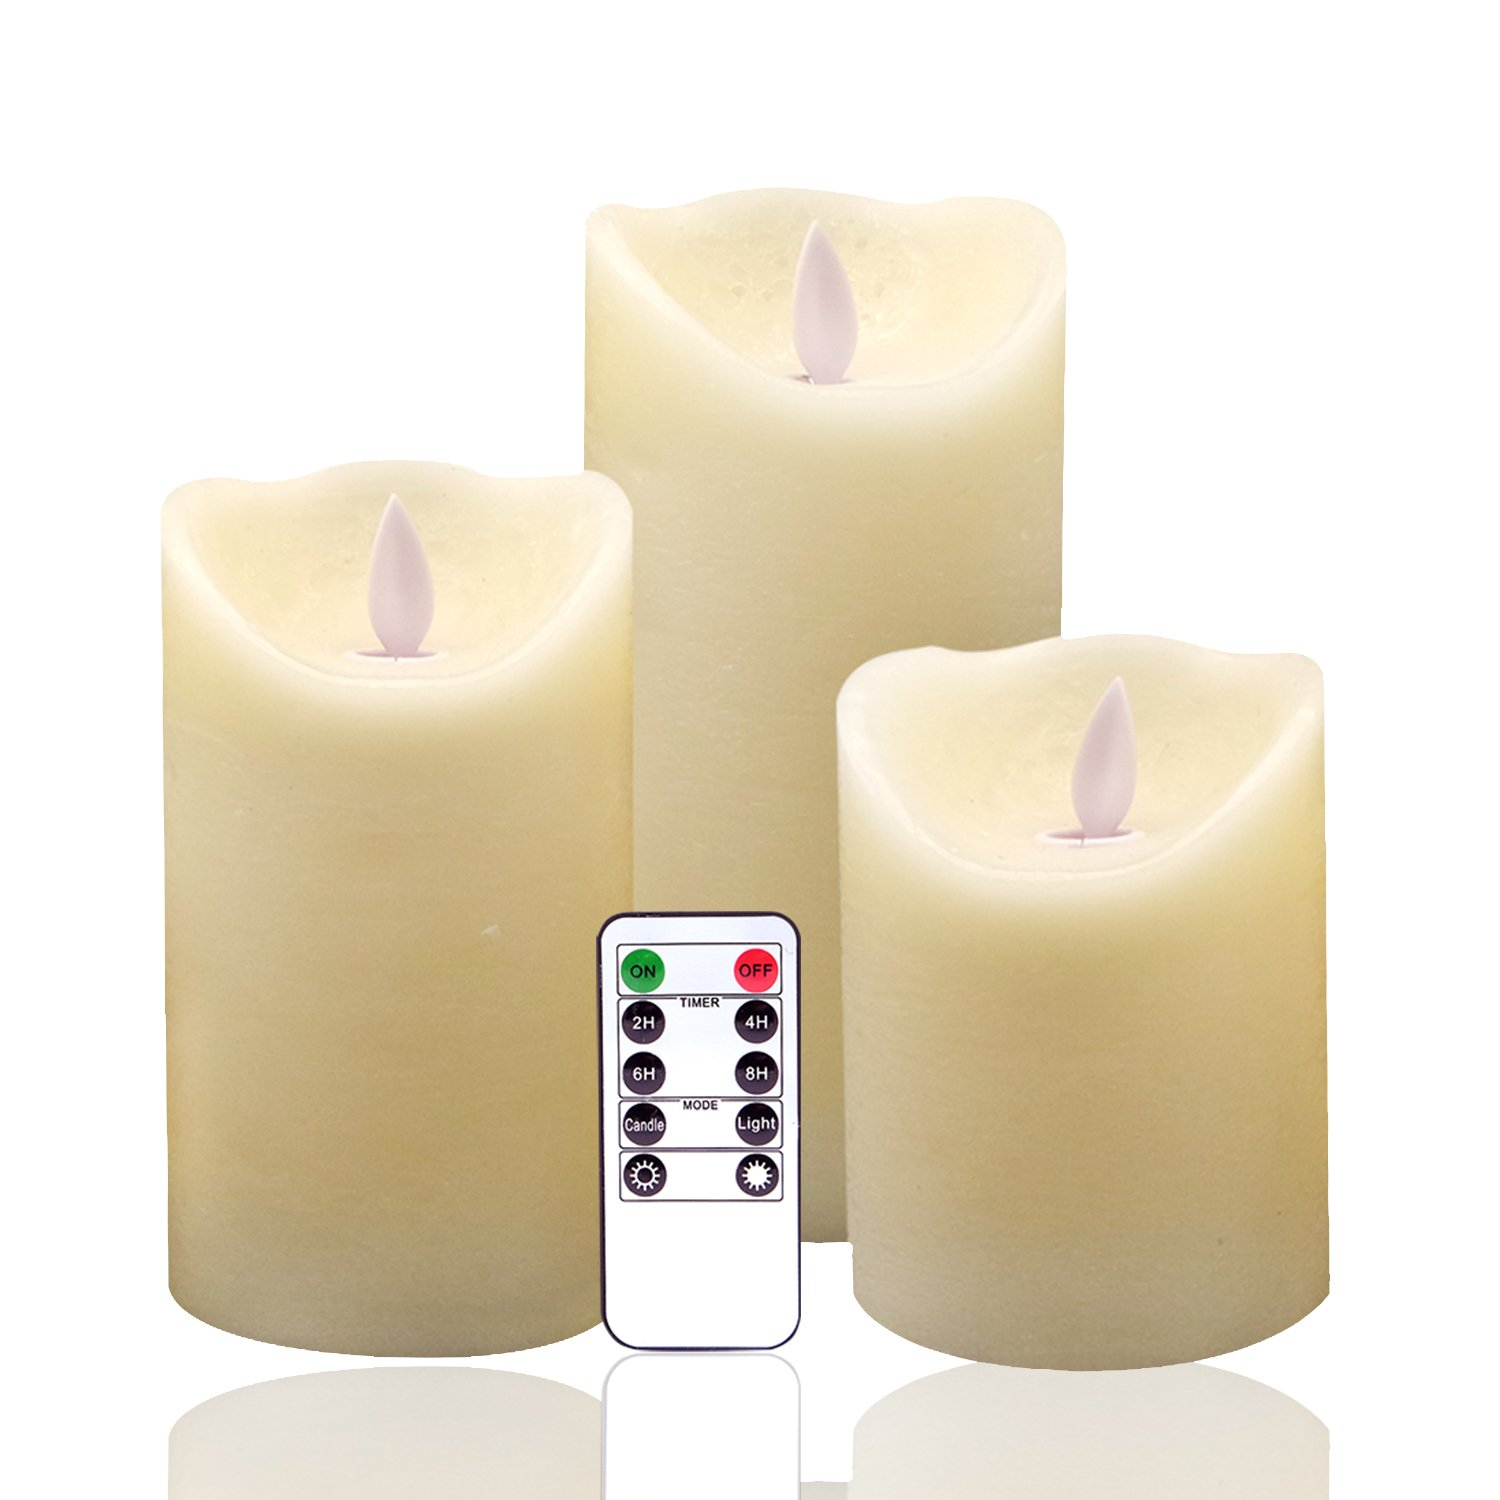 Eldnacele Flickering Flameless Candles Dancing Flame with Timer Remote Control 4 5 6 Inches Set of 3 Real Wax Pillar Battery Operated LED Candles Dripping Finish for Home Decoration and Weddings Parties LD003-B